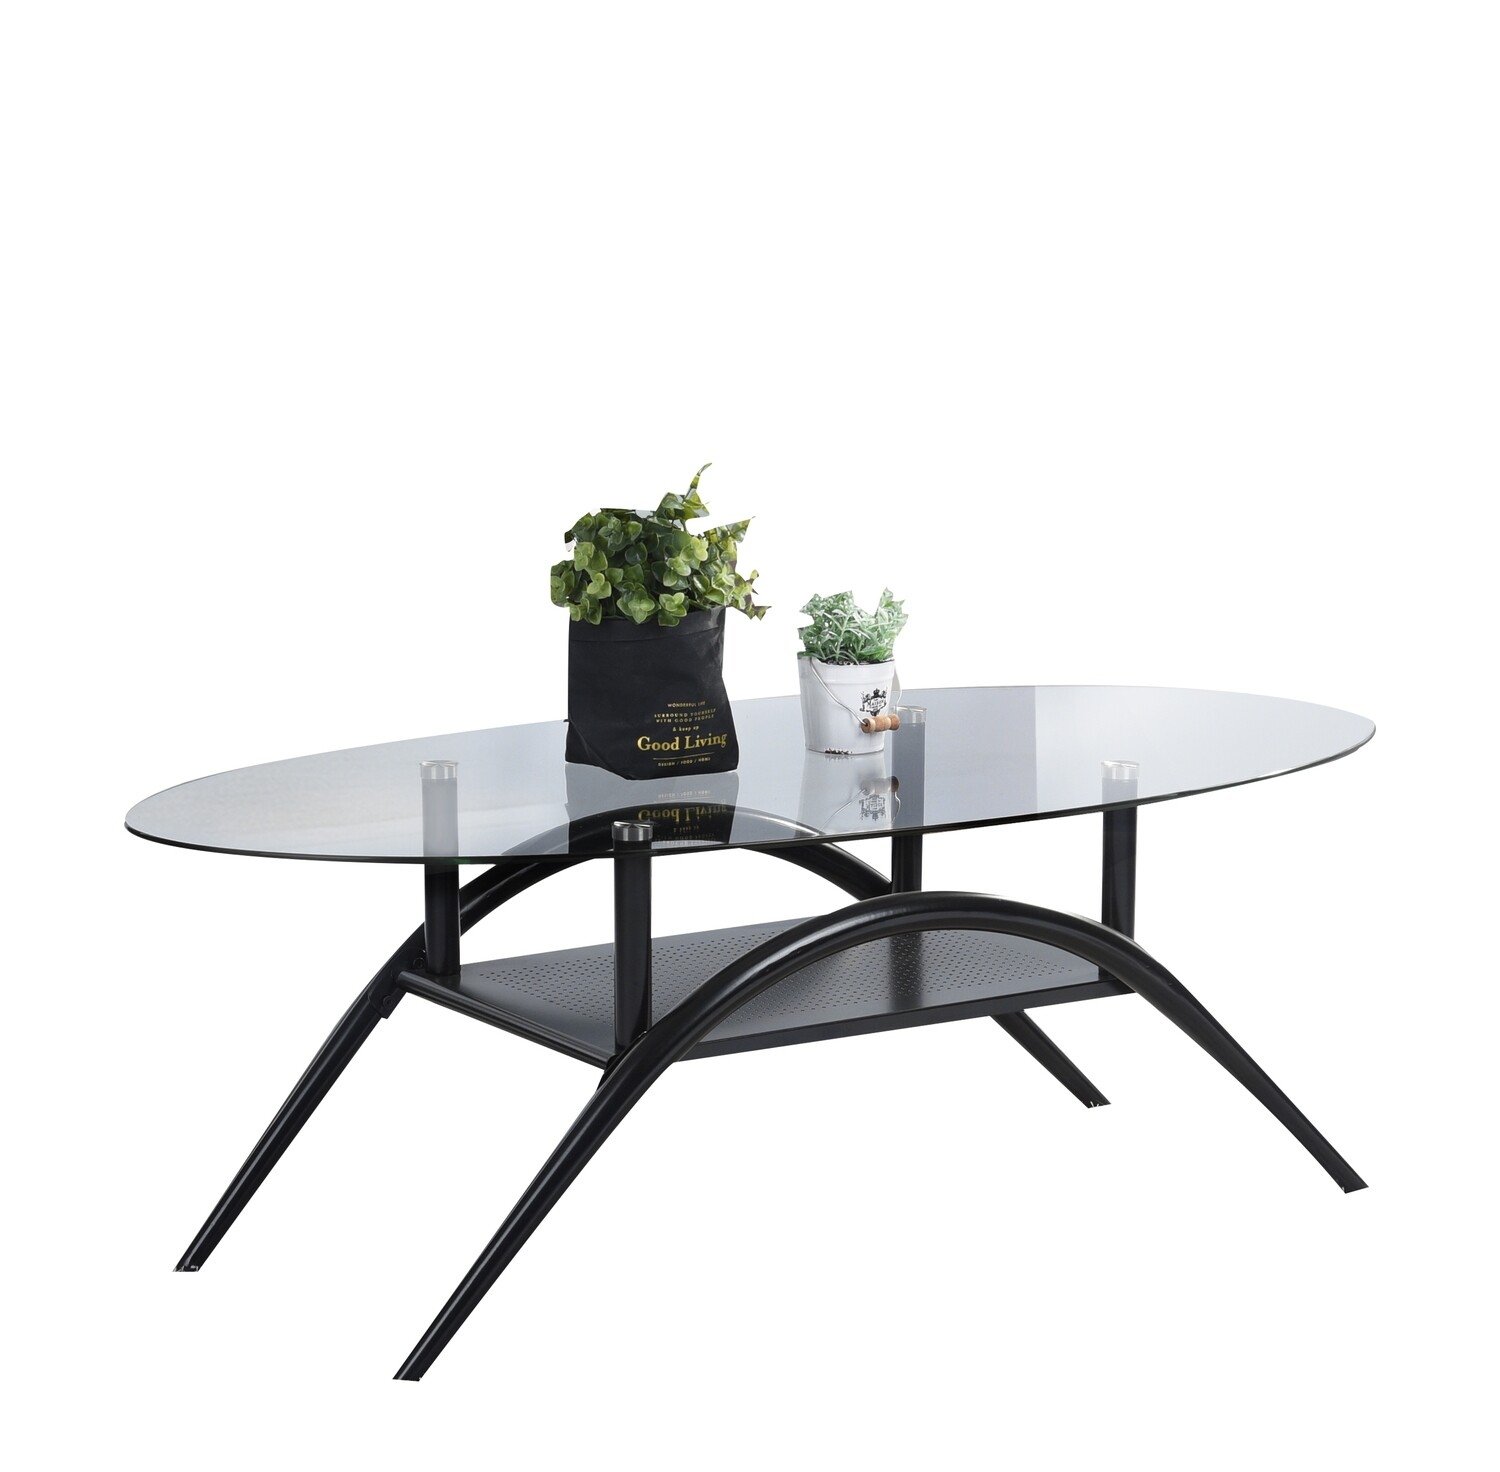 Glass Top Coffee Table (Pucci Oval)